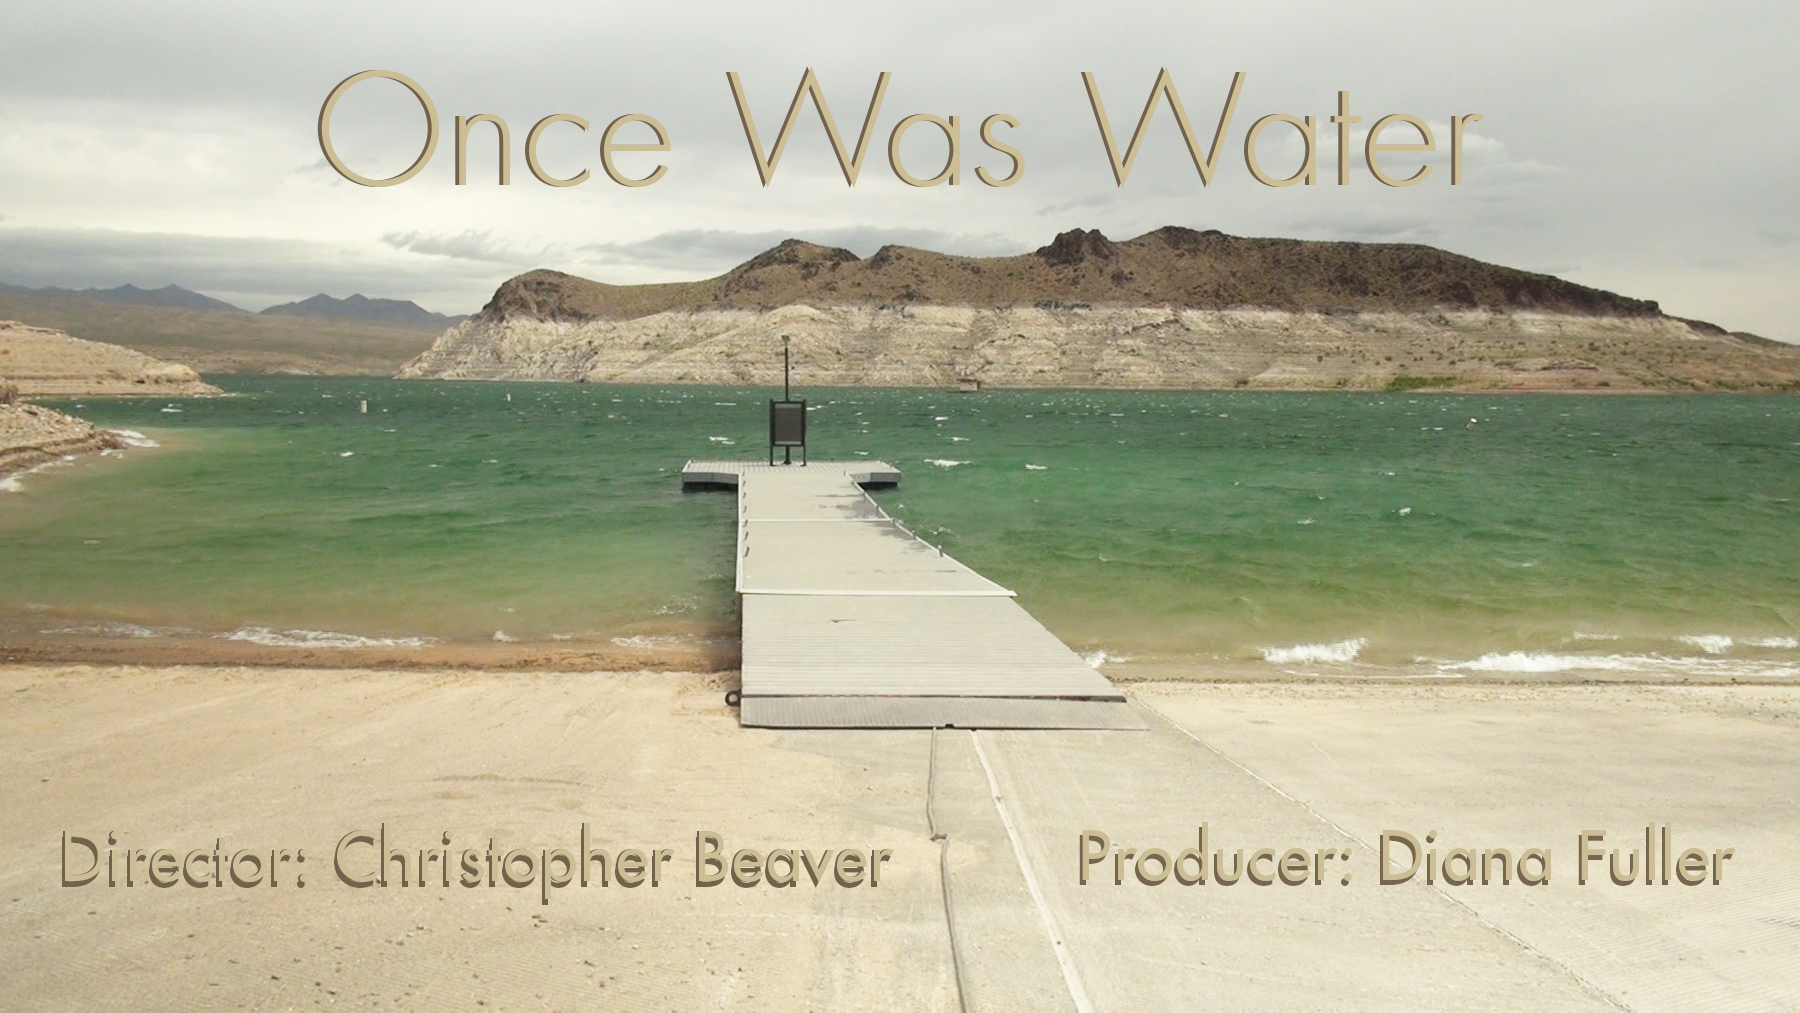 ONCE WAS WATER     Once Was Water  seeks to bring a fundamental understanding of the global water crisis to diverse audiences.